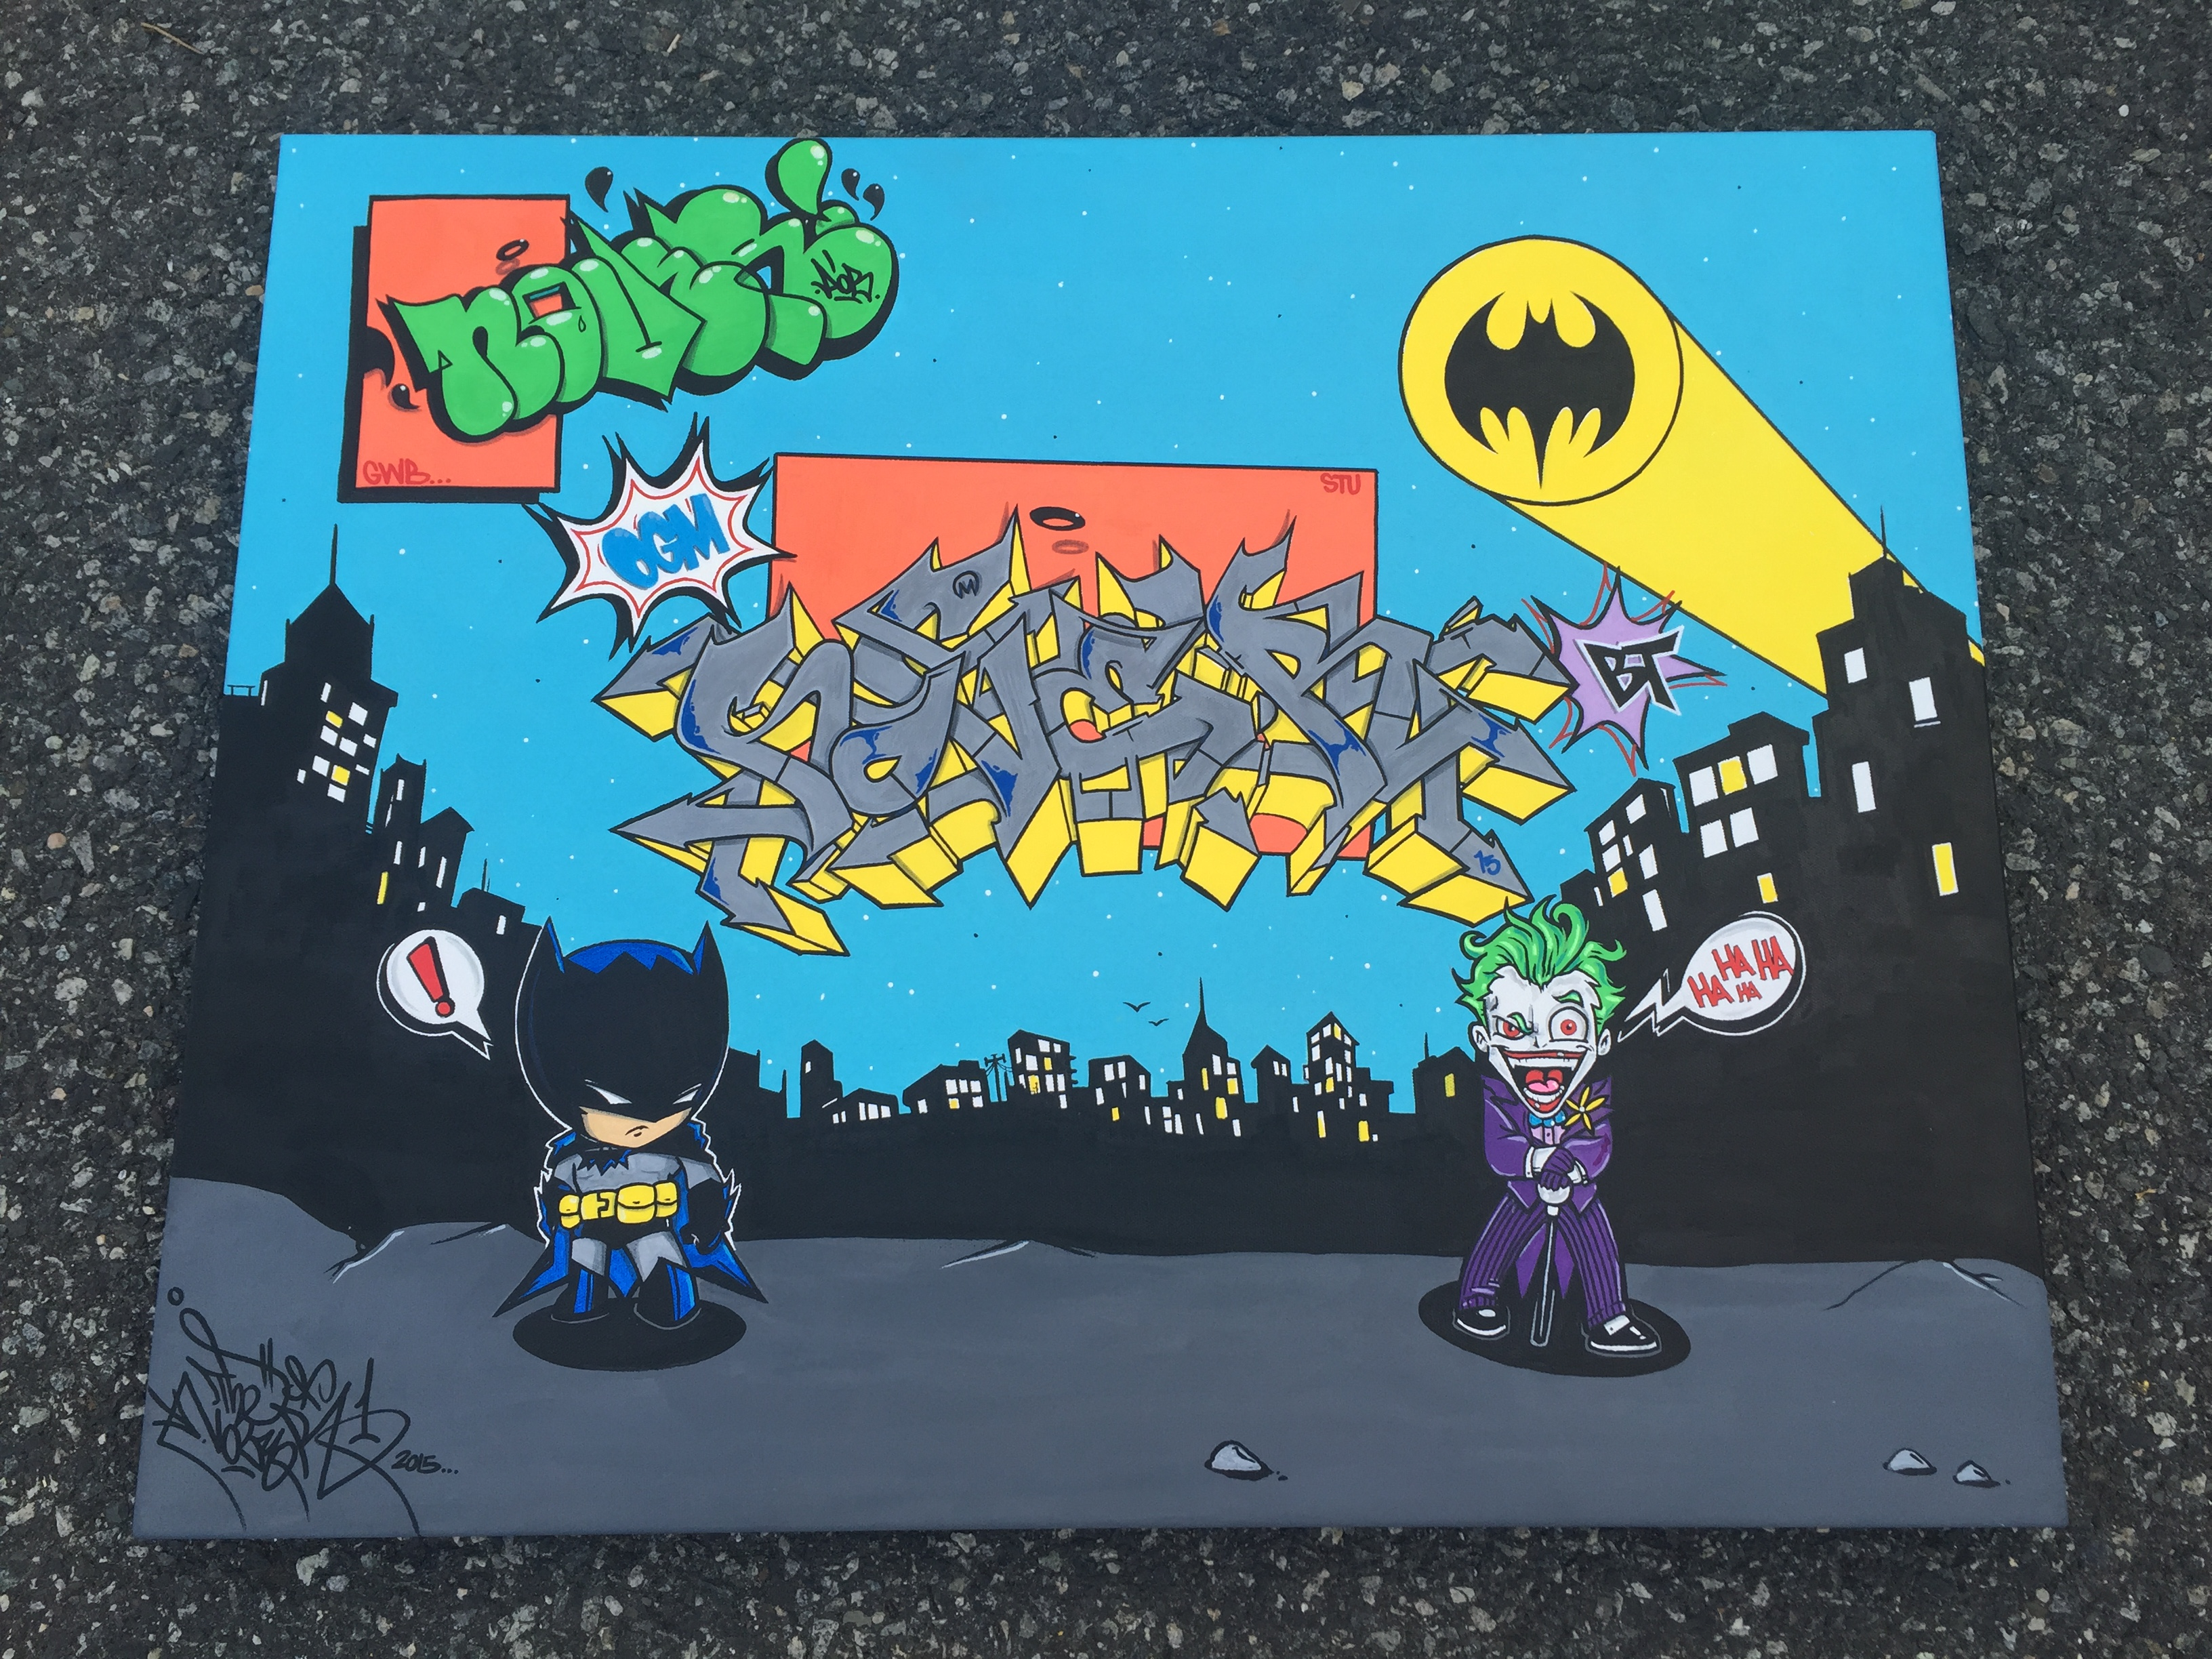 Batman & Joker, Nover on Canvas with Markers & Acrylic Paint. 2015.